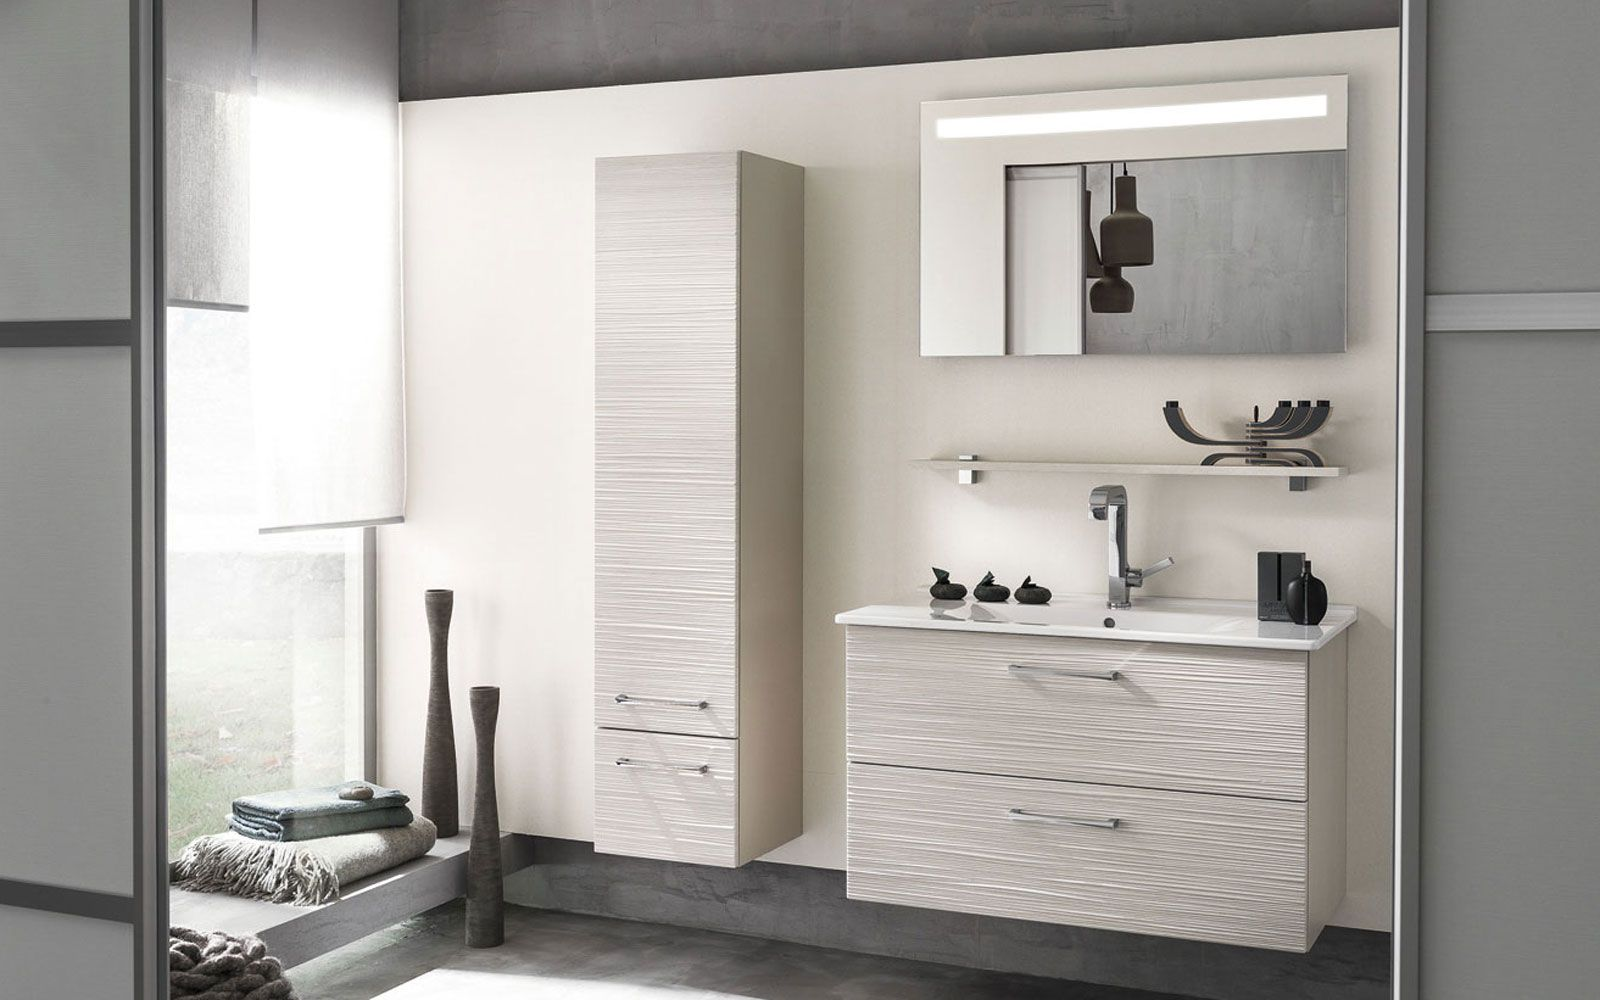 miroir lumi re int gr e meuble sous vasque 2 niveaux de rangement vasque en c ramique blanc. Black Bedroom Furniture Sets. Home Design Ideas